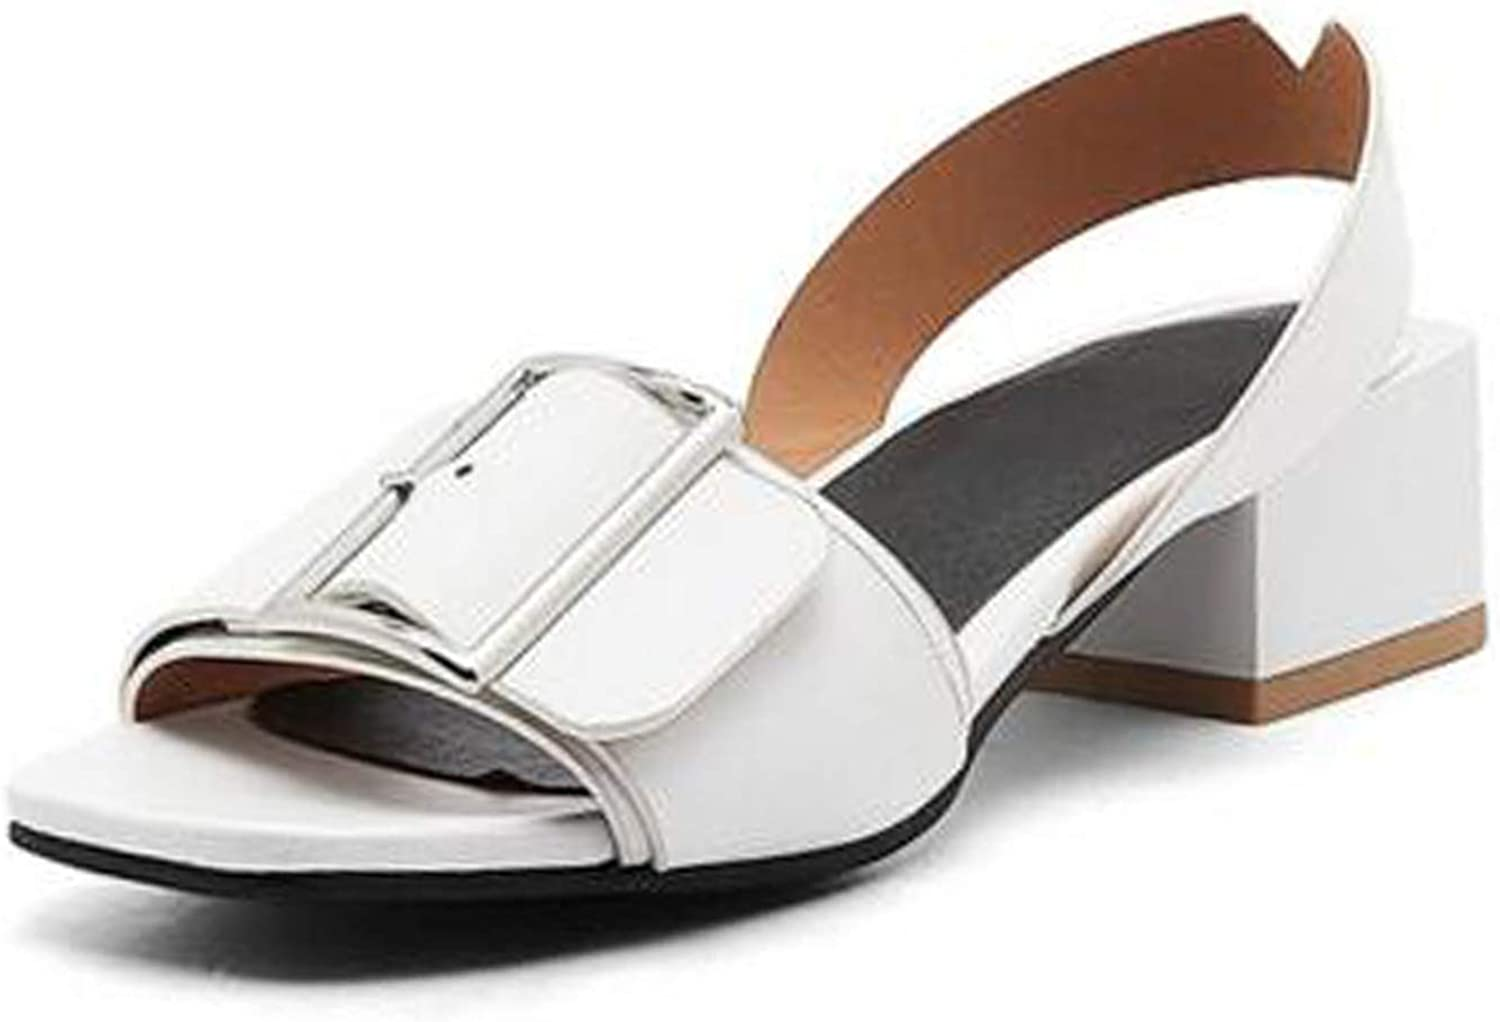 Fairly shoes Open Toe shoes Buckle Square Heels Date Summer Casual Fanshion shoes,White,4